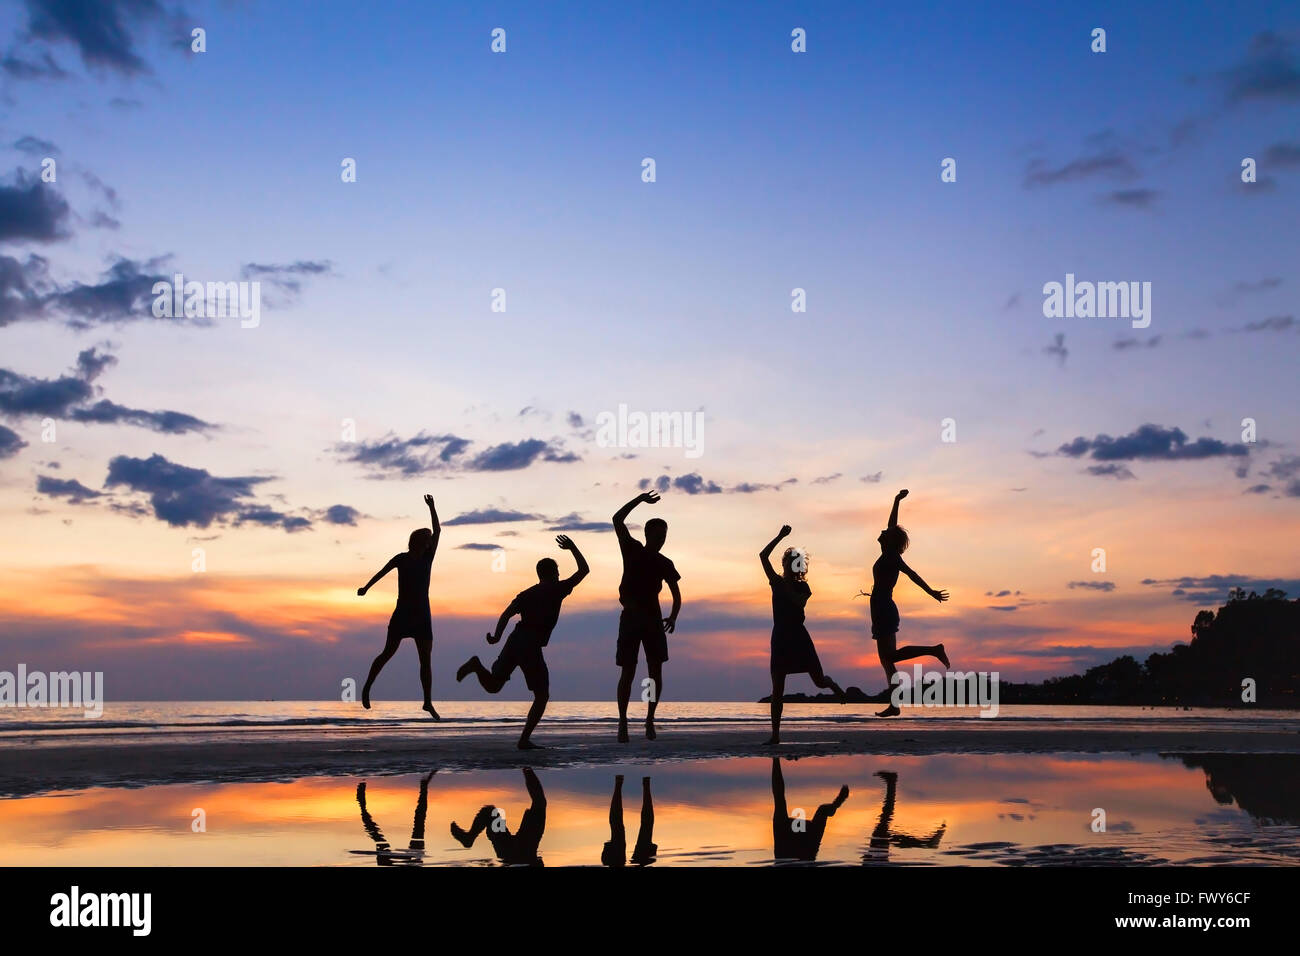 group of people jumping on the beach at sunset, silhouette of friends having fun together Stock Photo